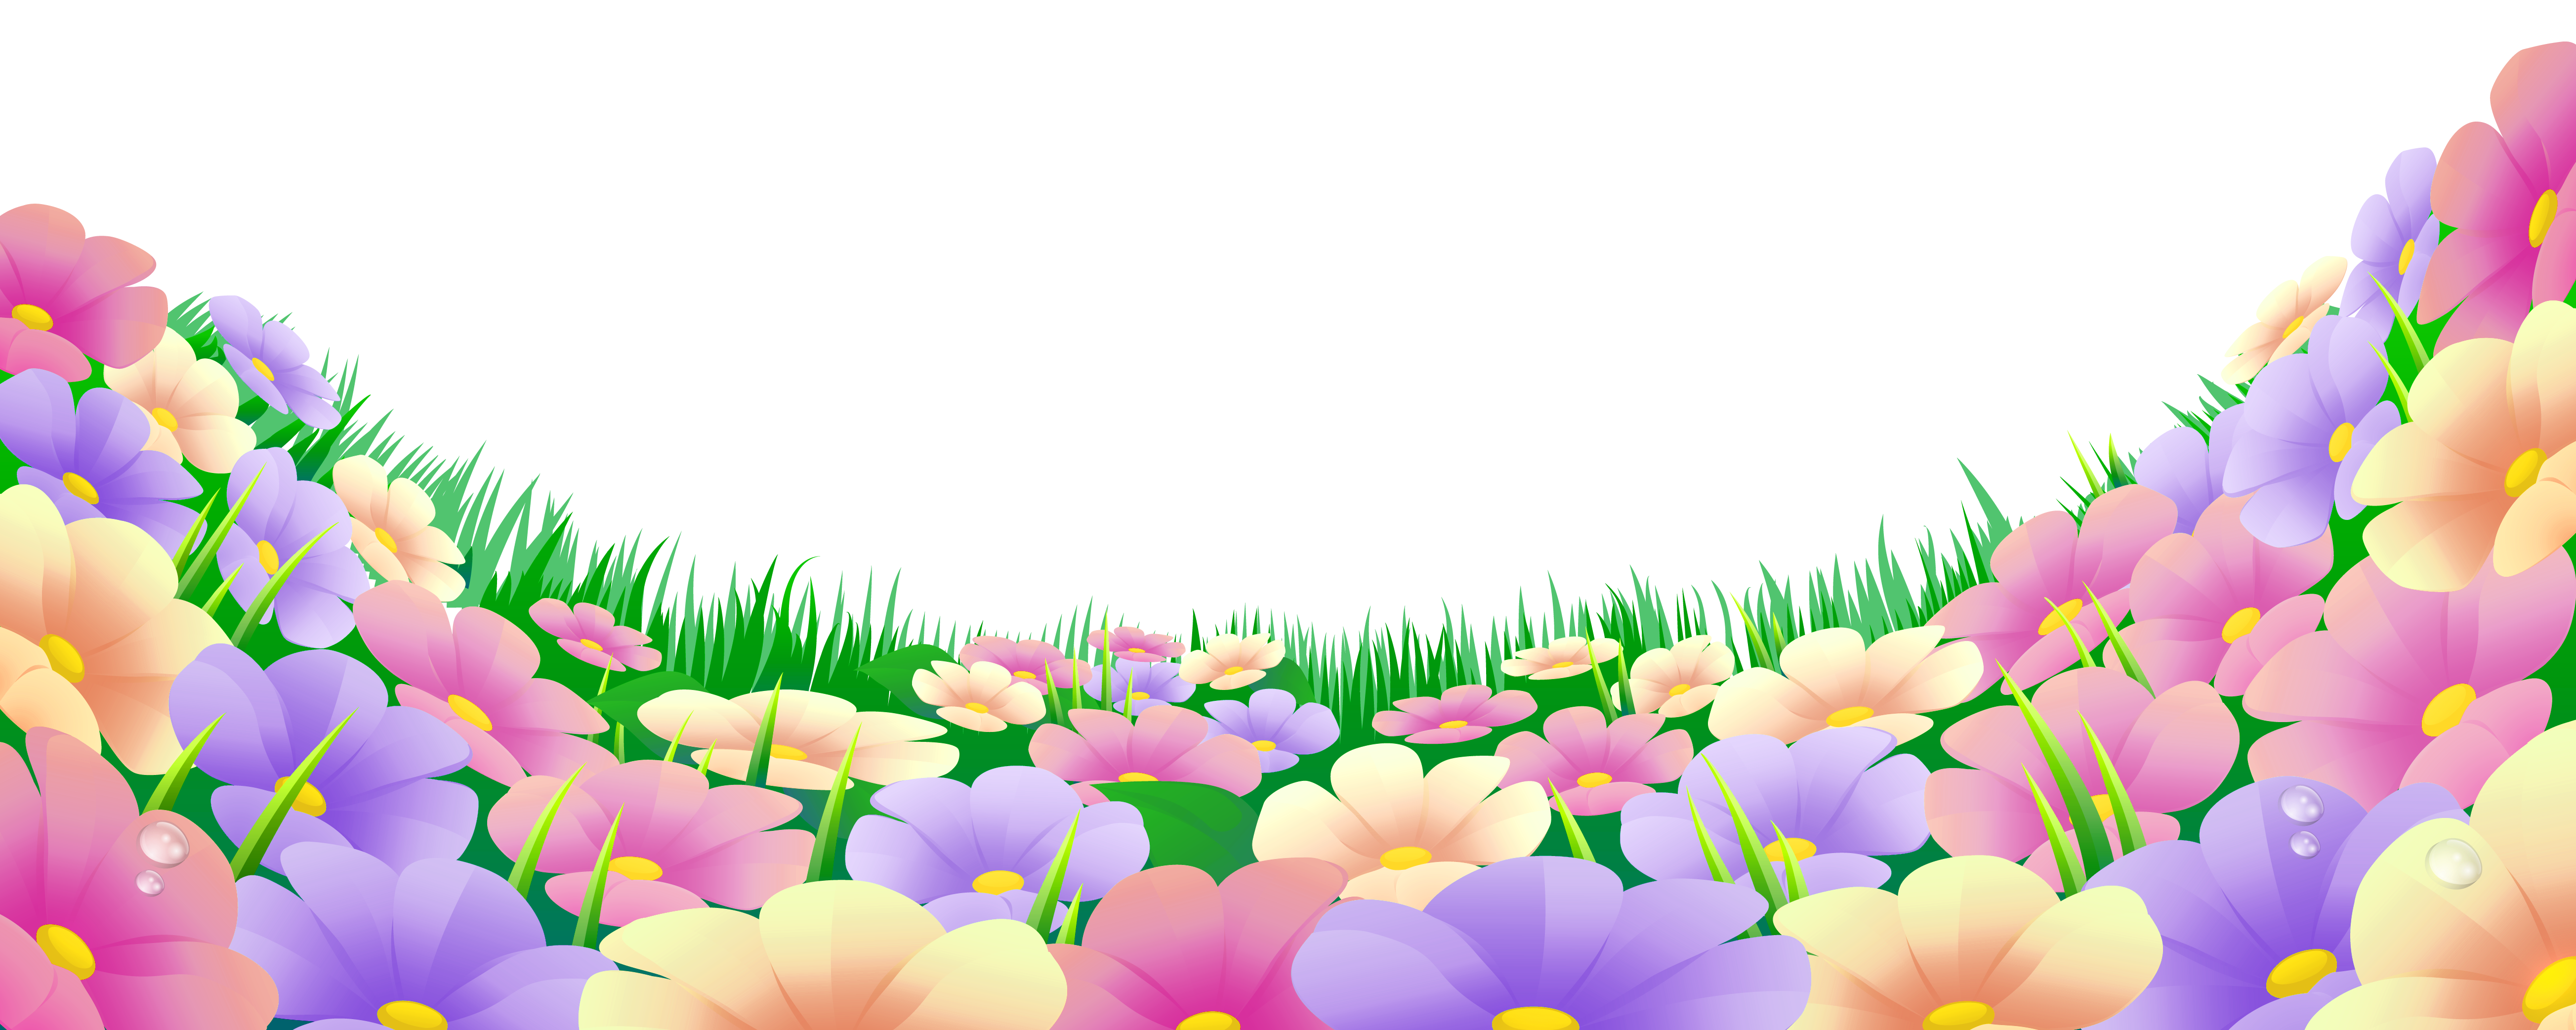 Grass with flowers png. Hills clipart beautiful fence